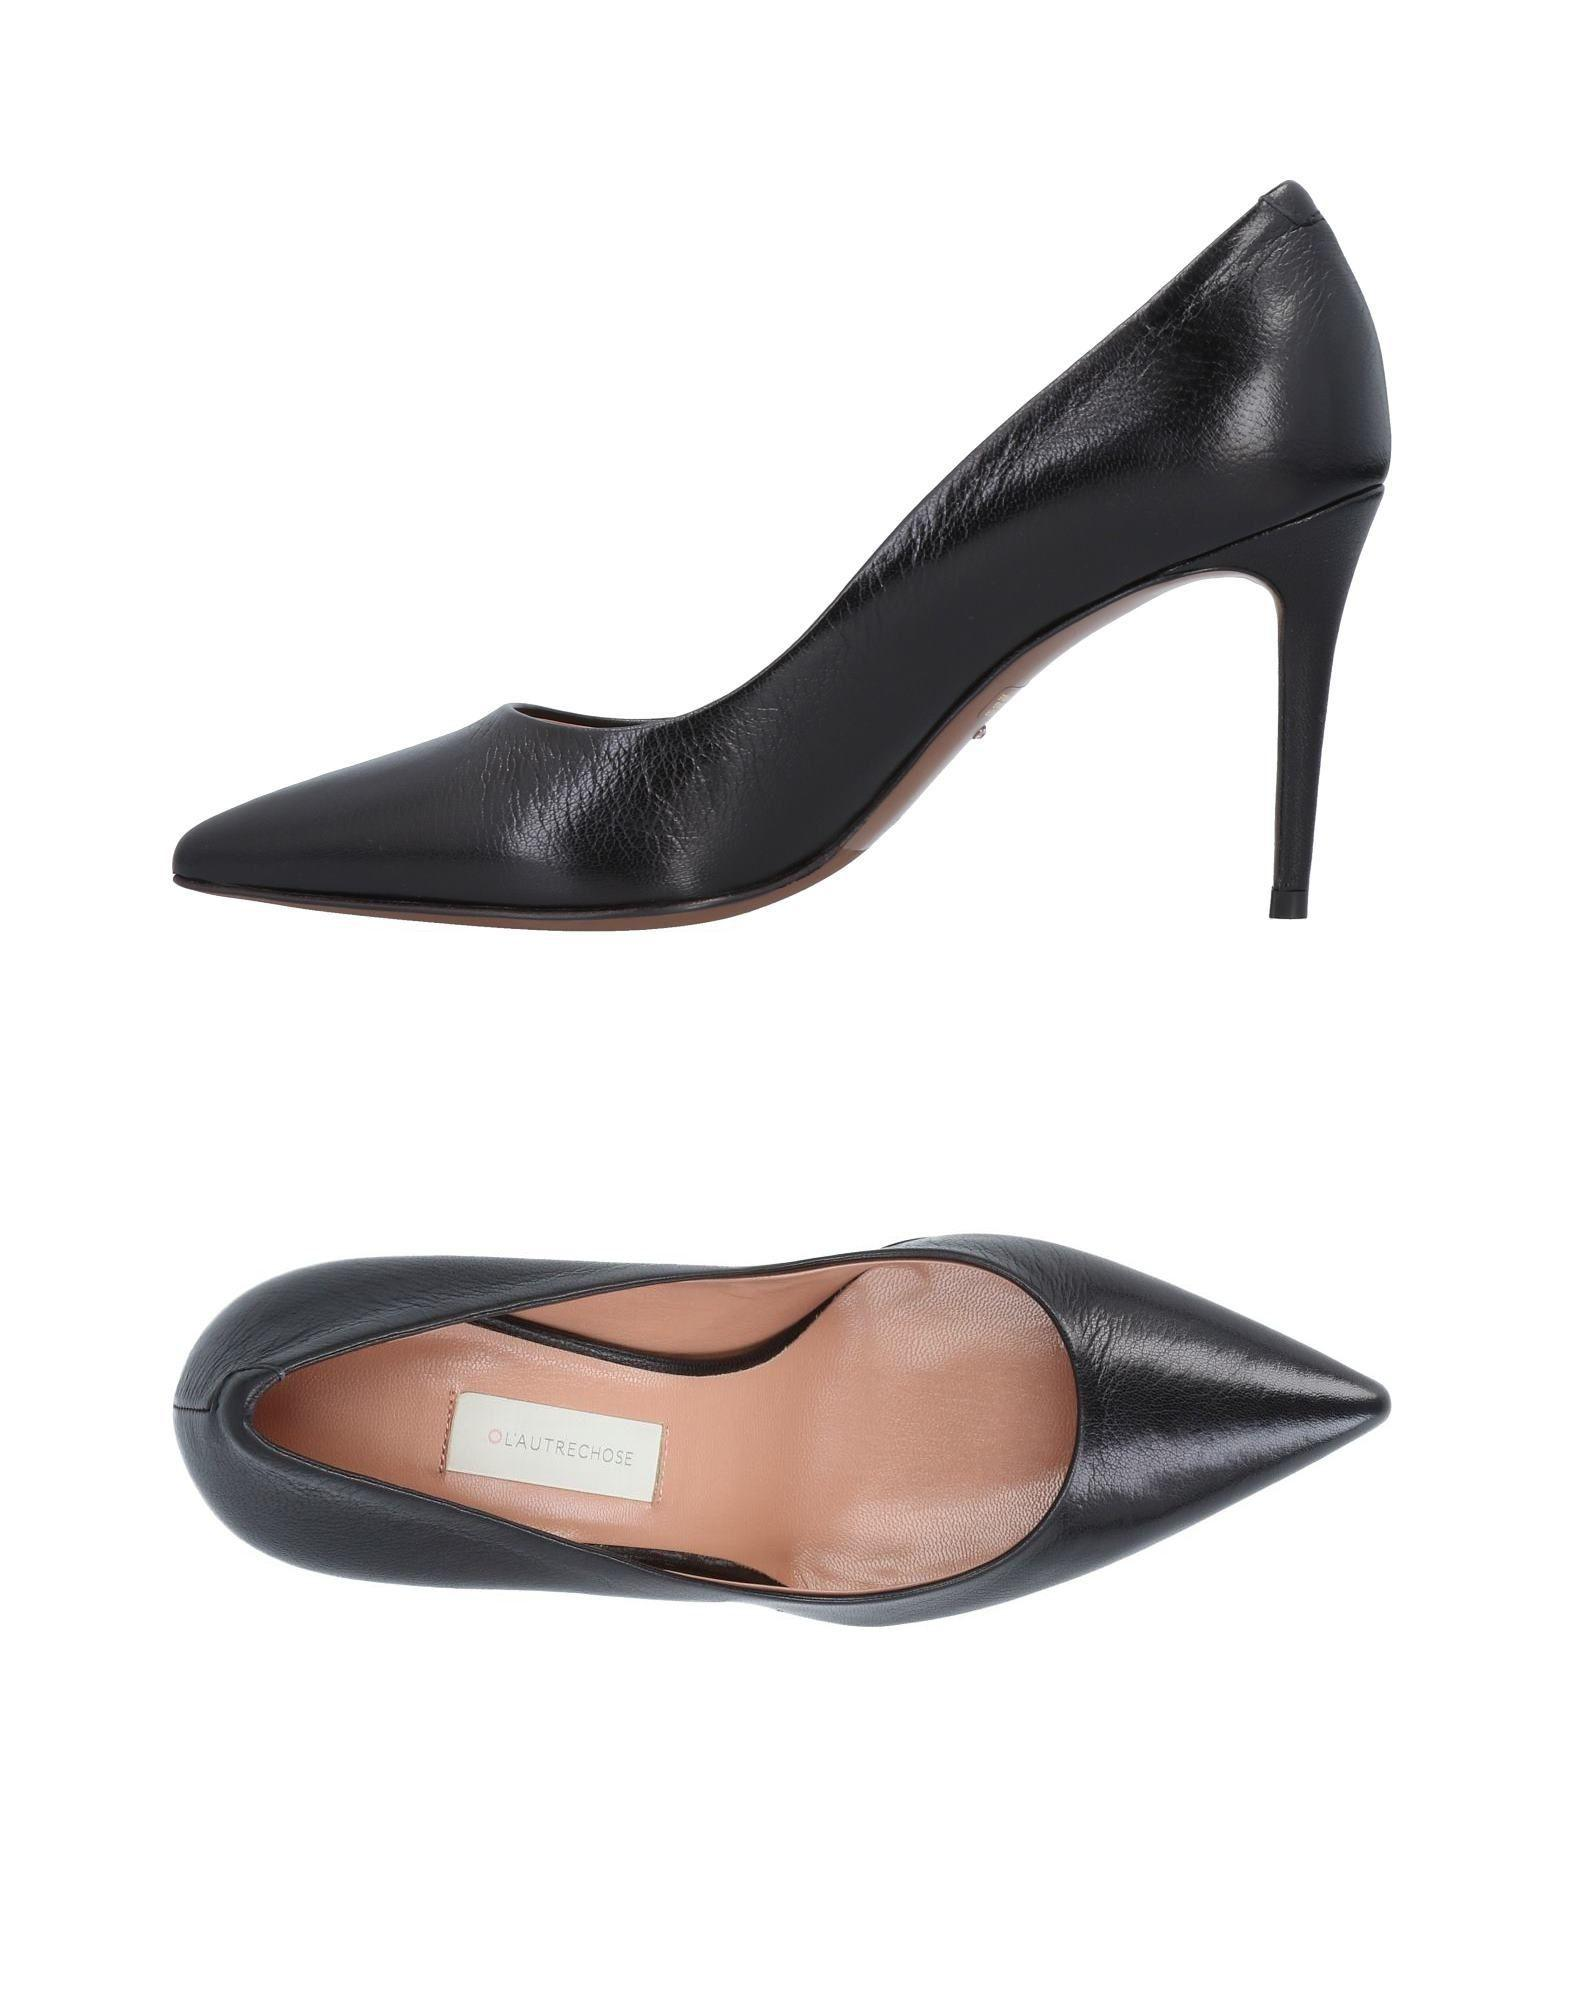 Cheap Lautre Chose Pumps Shoes Lead For Women